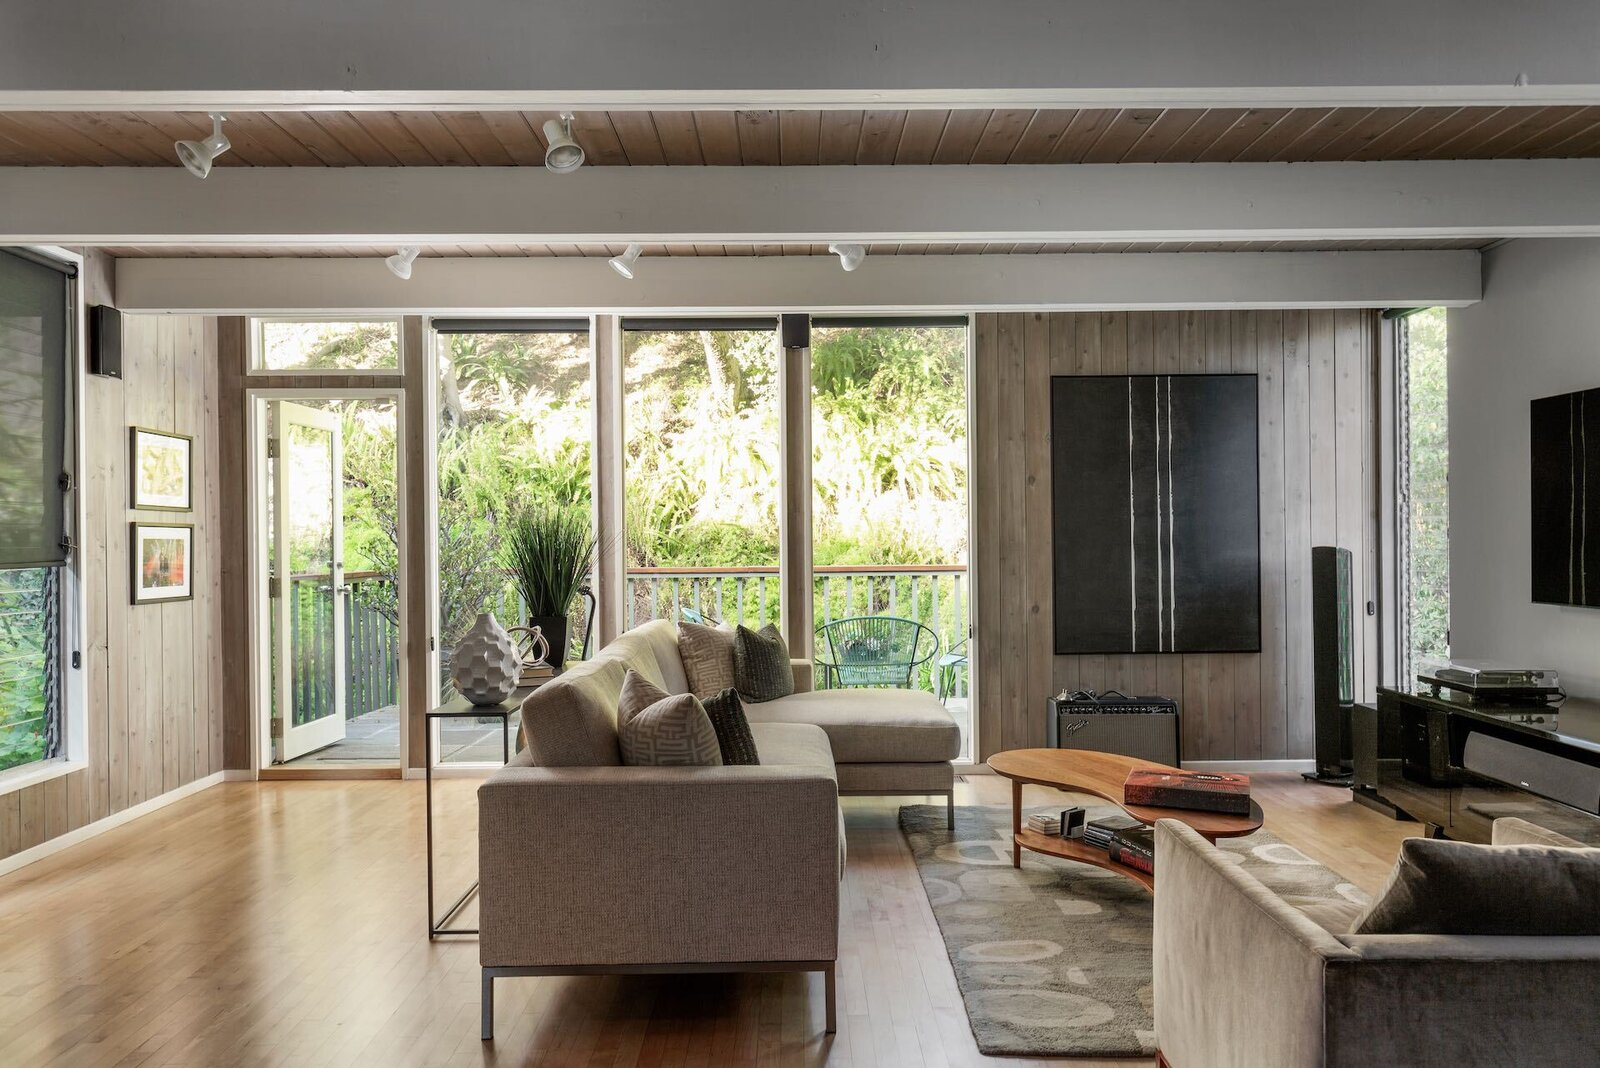 A Serene Post-and-Beam Home in the Hills of Los Angeles Asks $1.4M